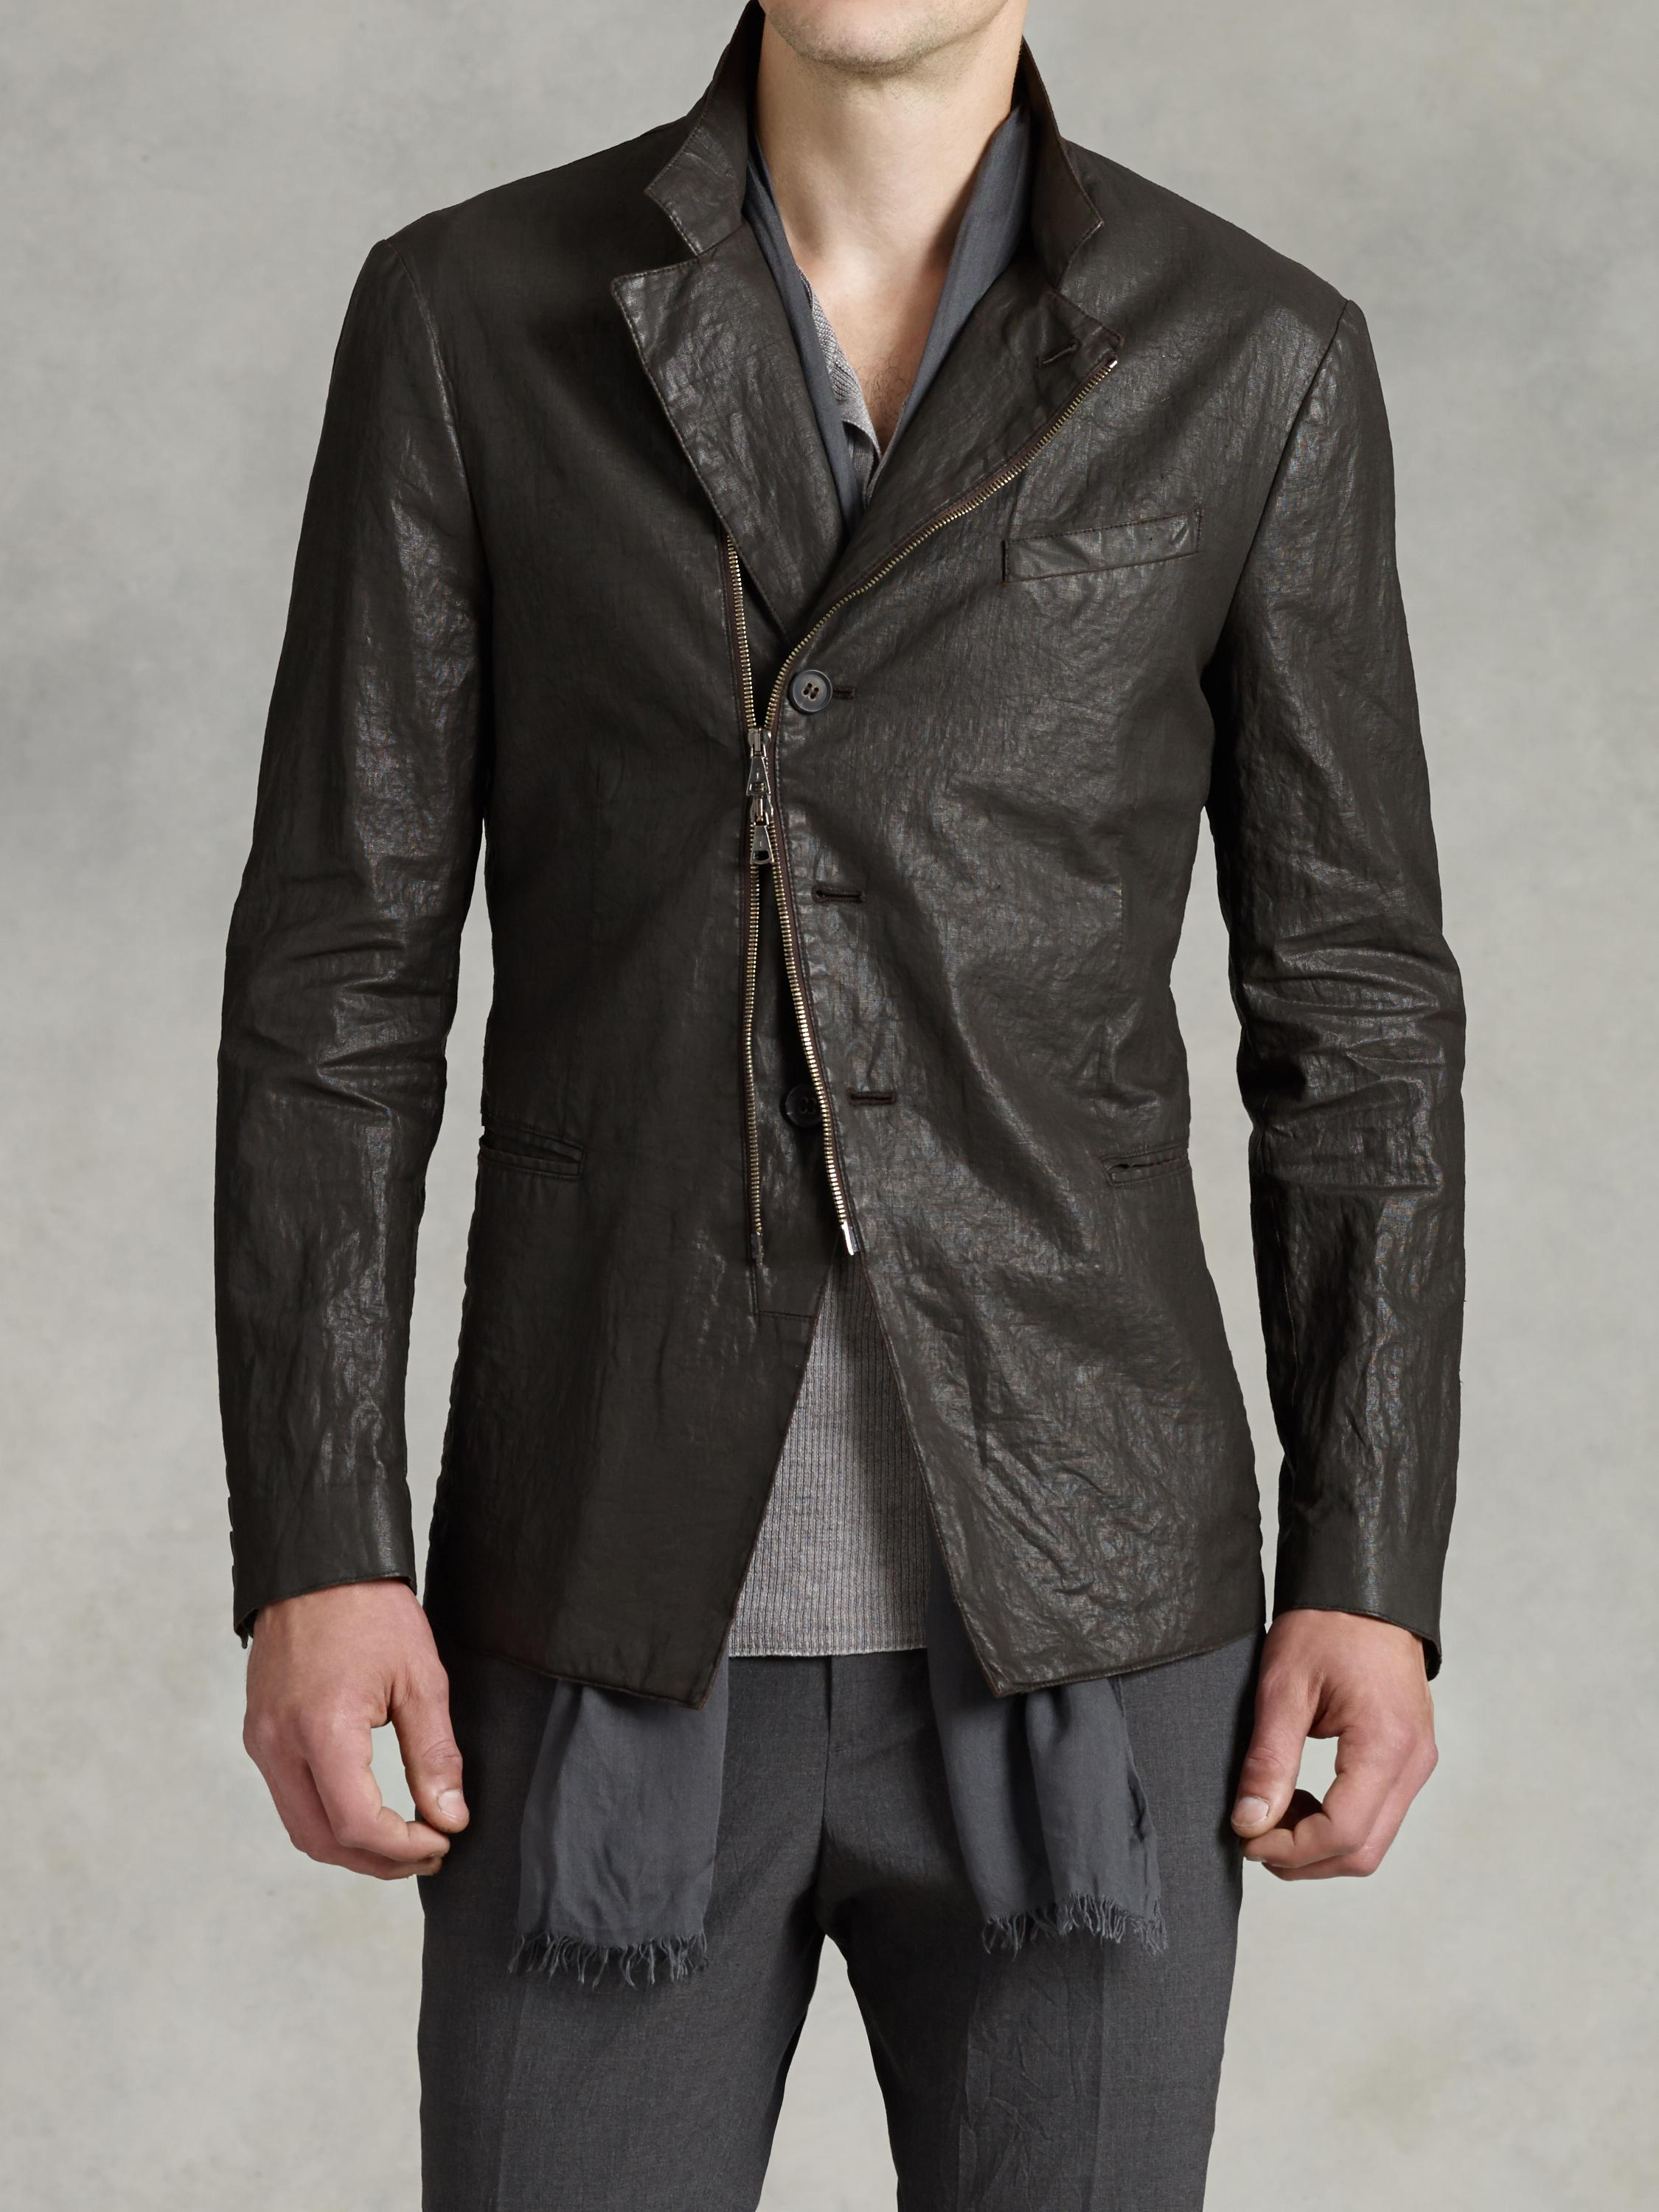 John Varvatos Asymmetrical Waxed Linen Jacket In Brown For